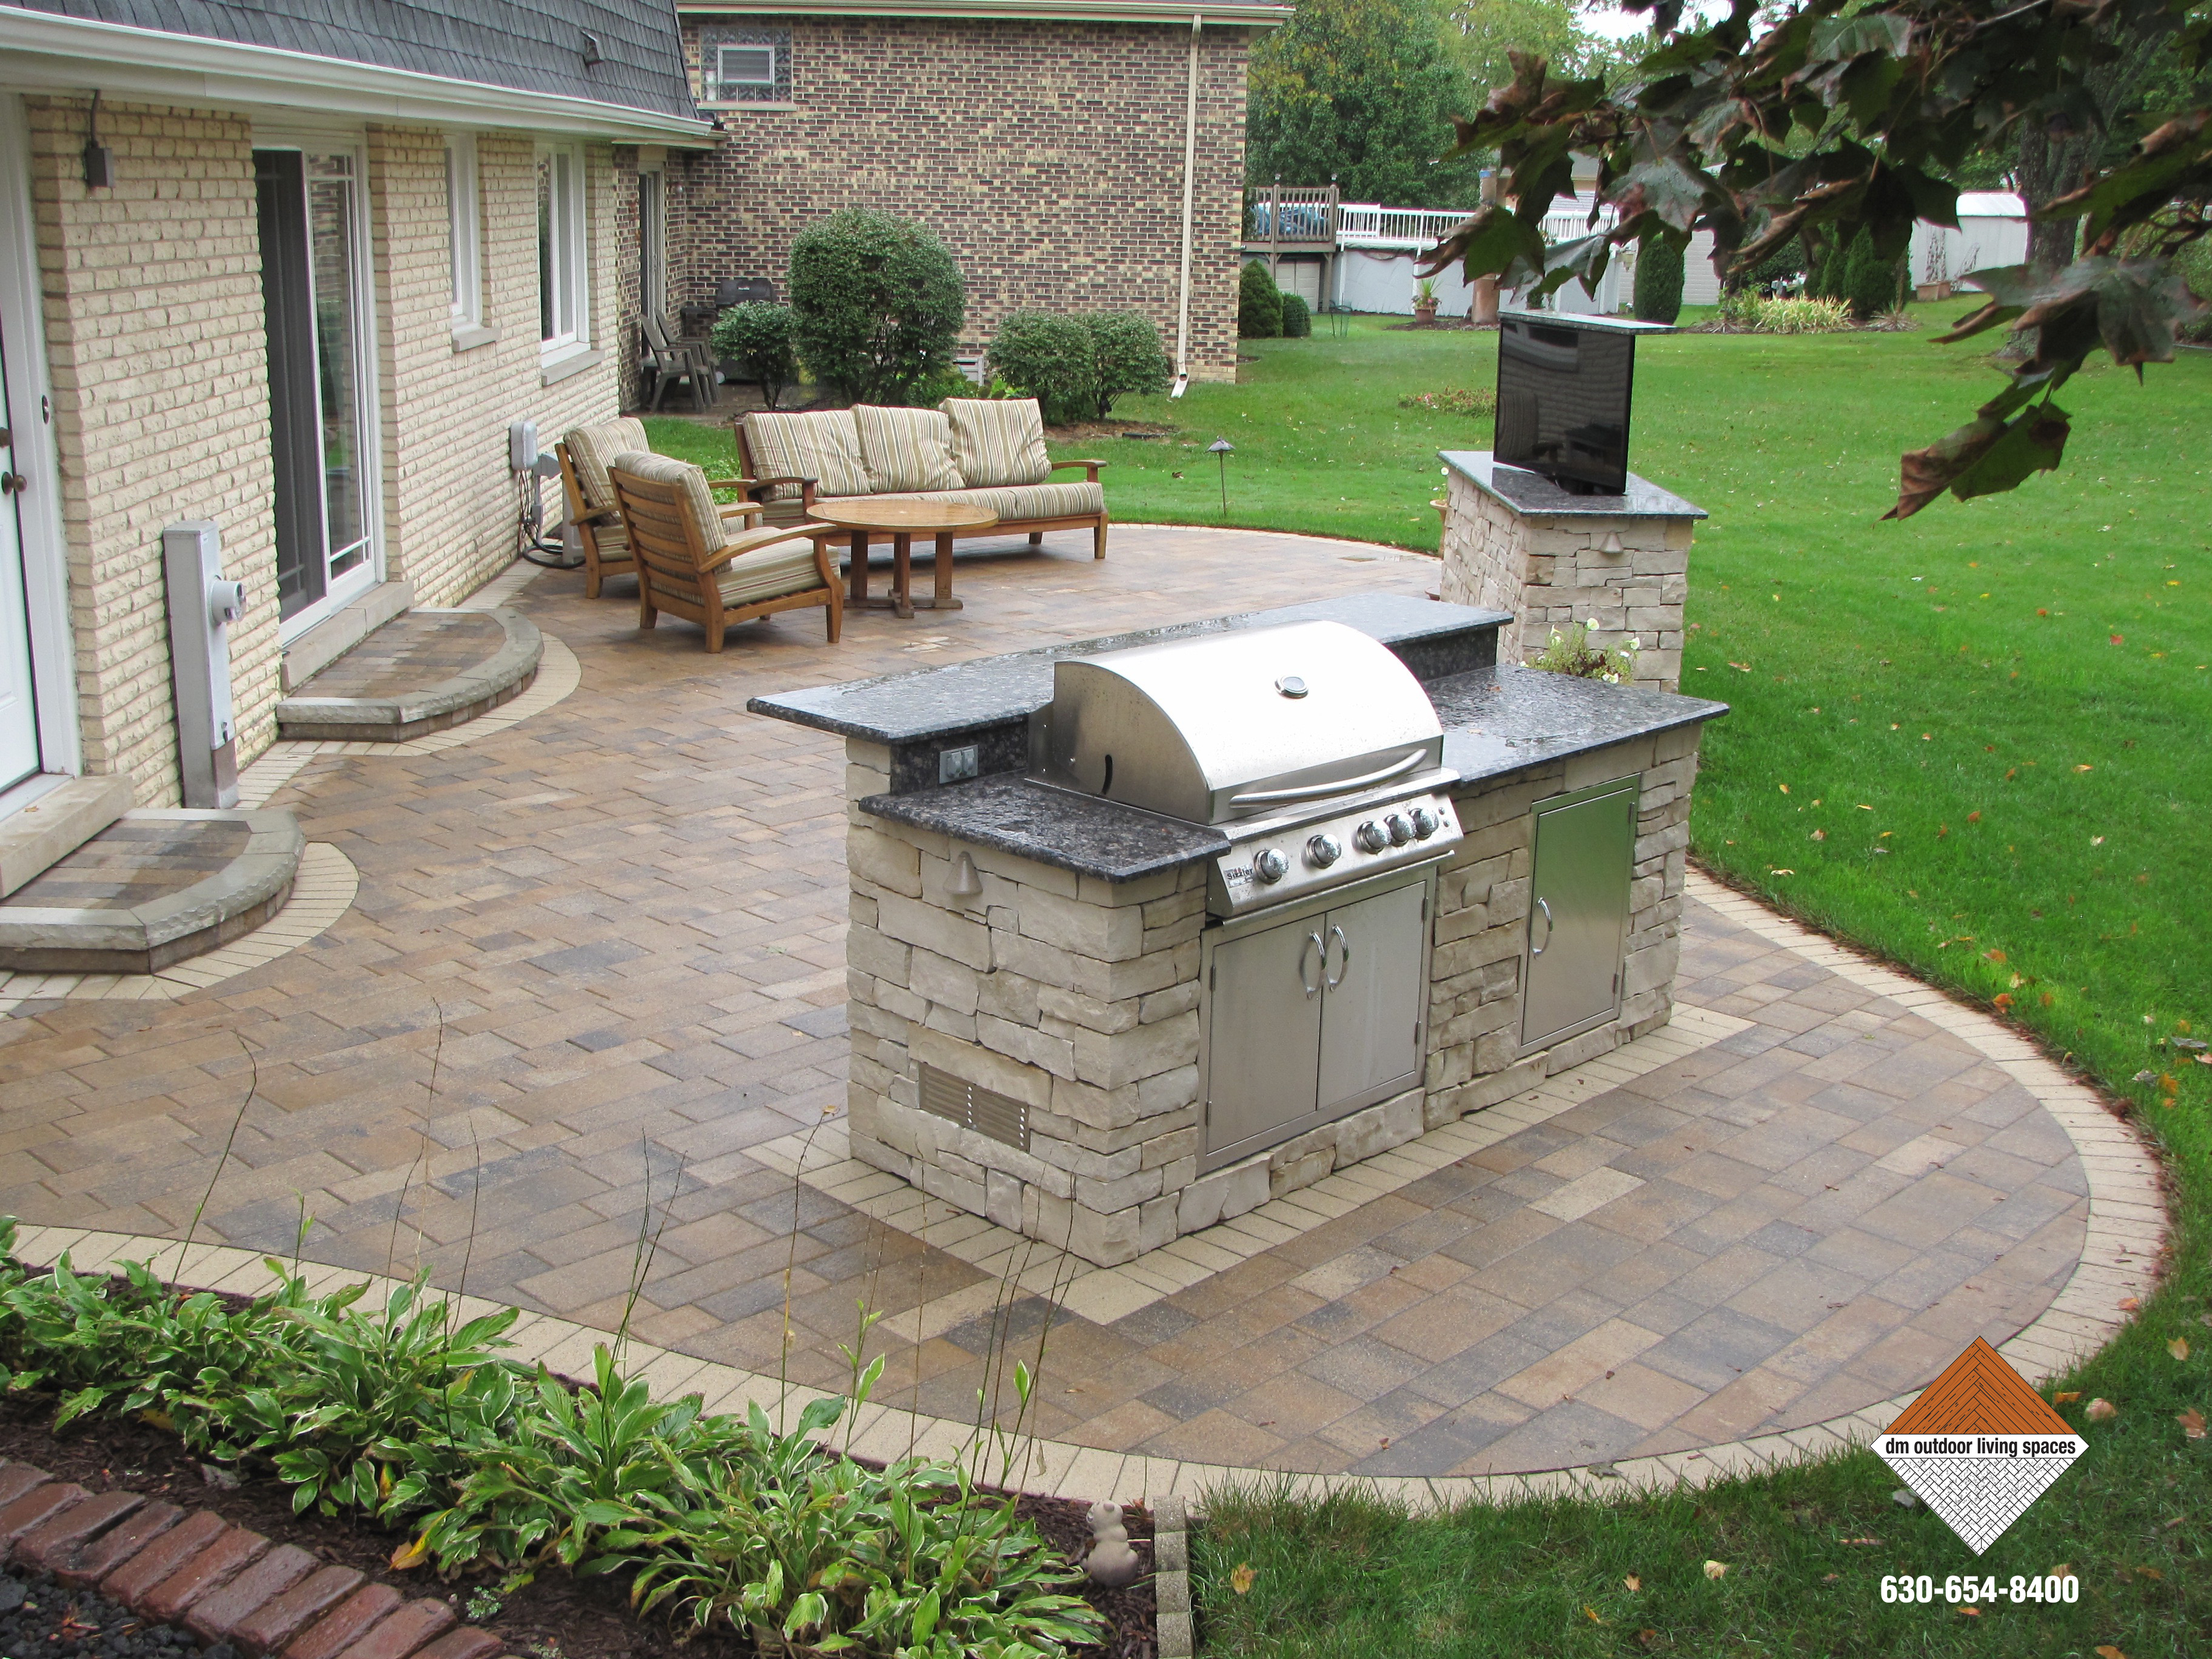 Outdoor Grills | Outdoor Kitchens on Patio Grill Station id=71761